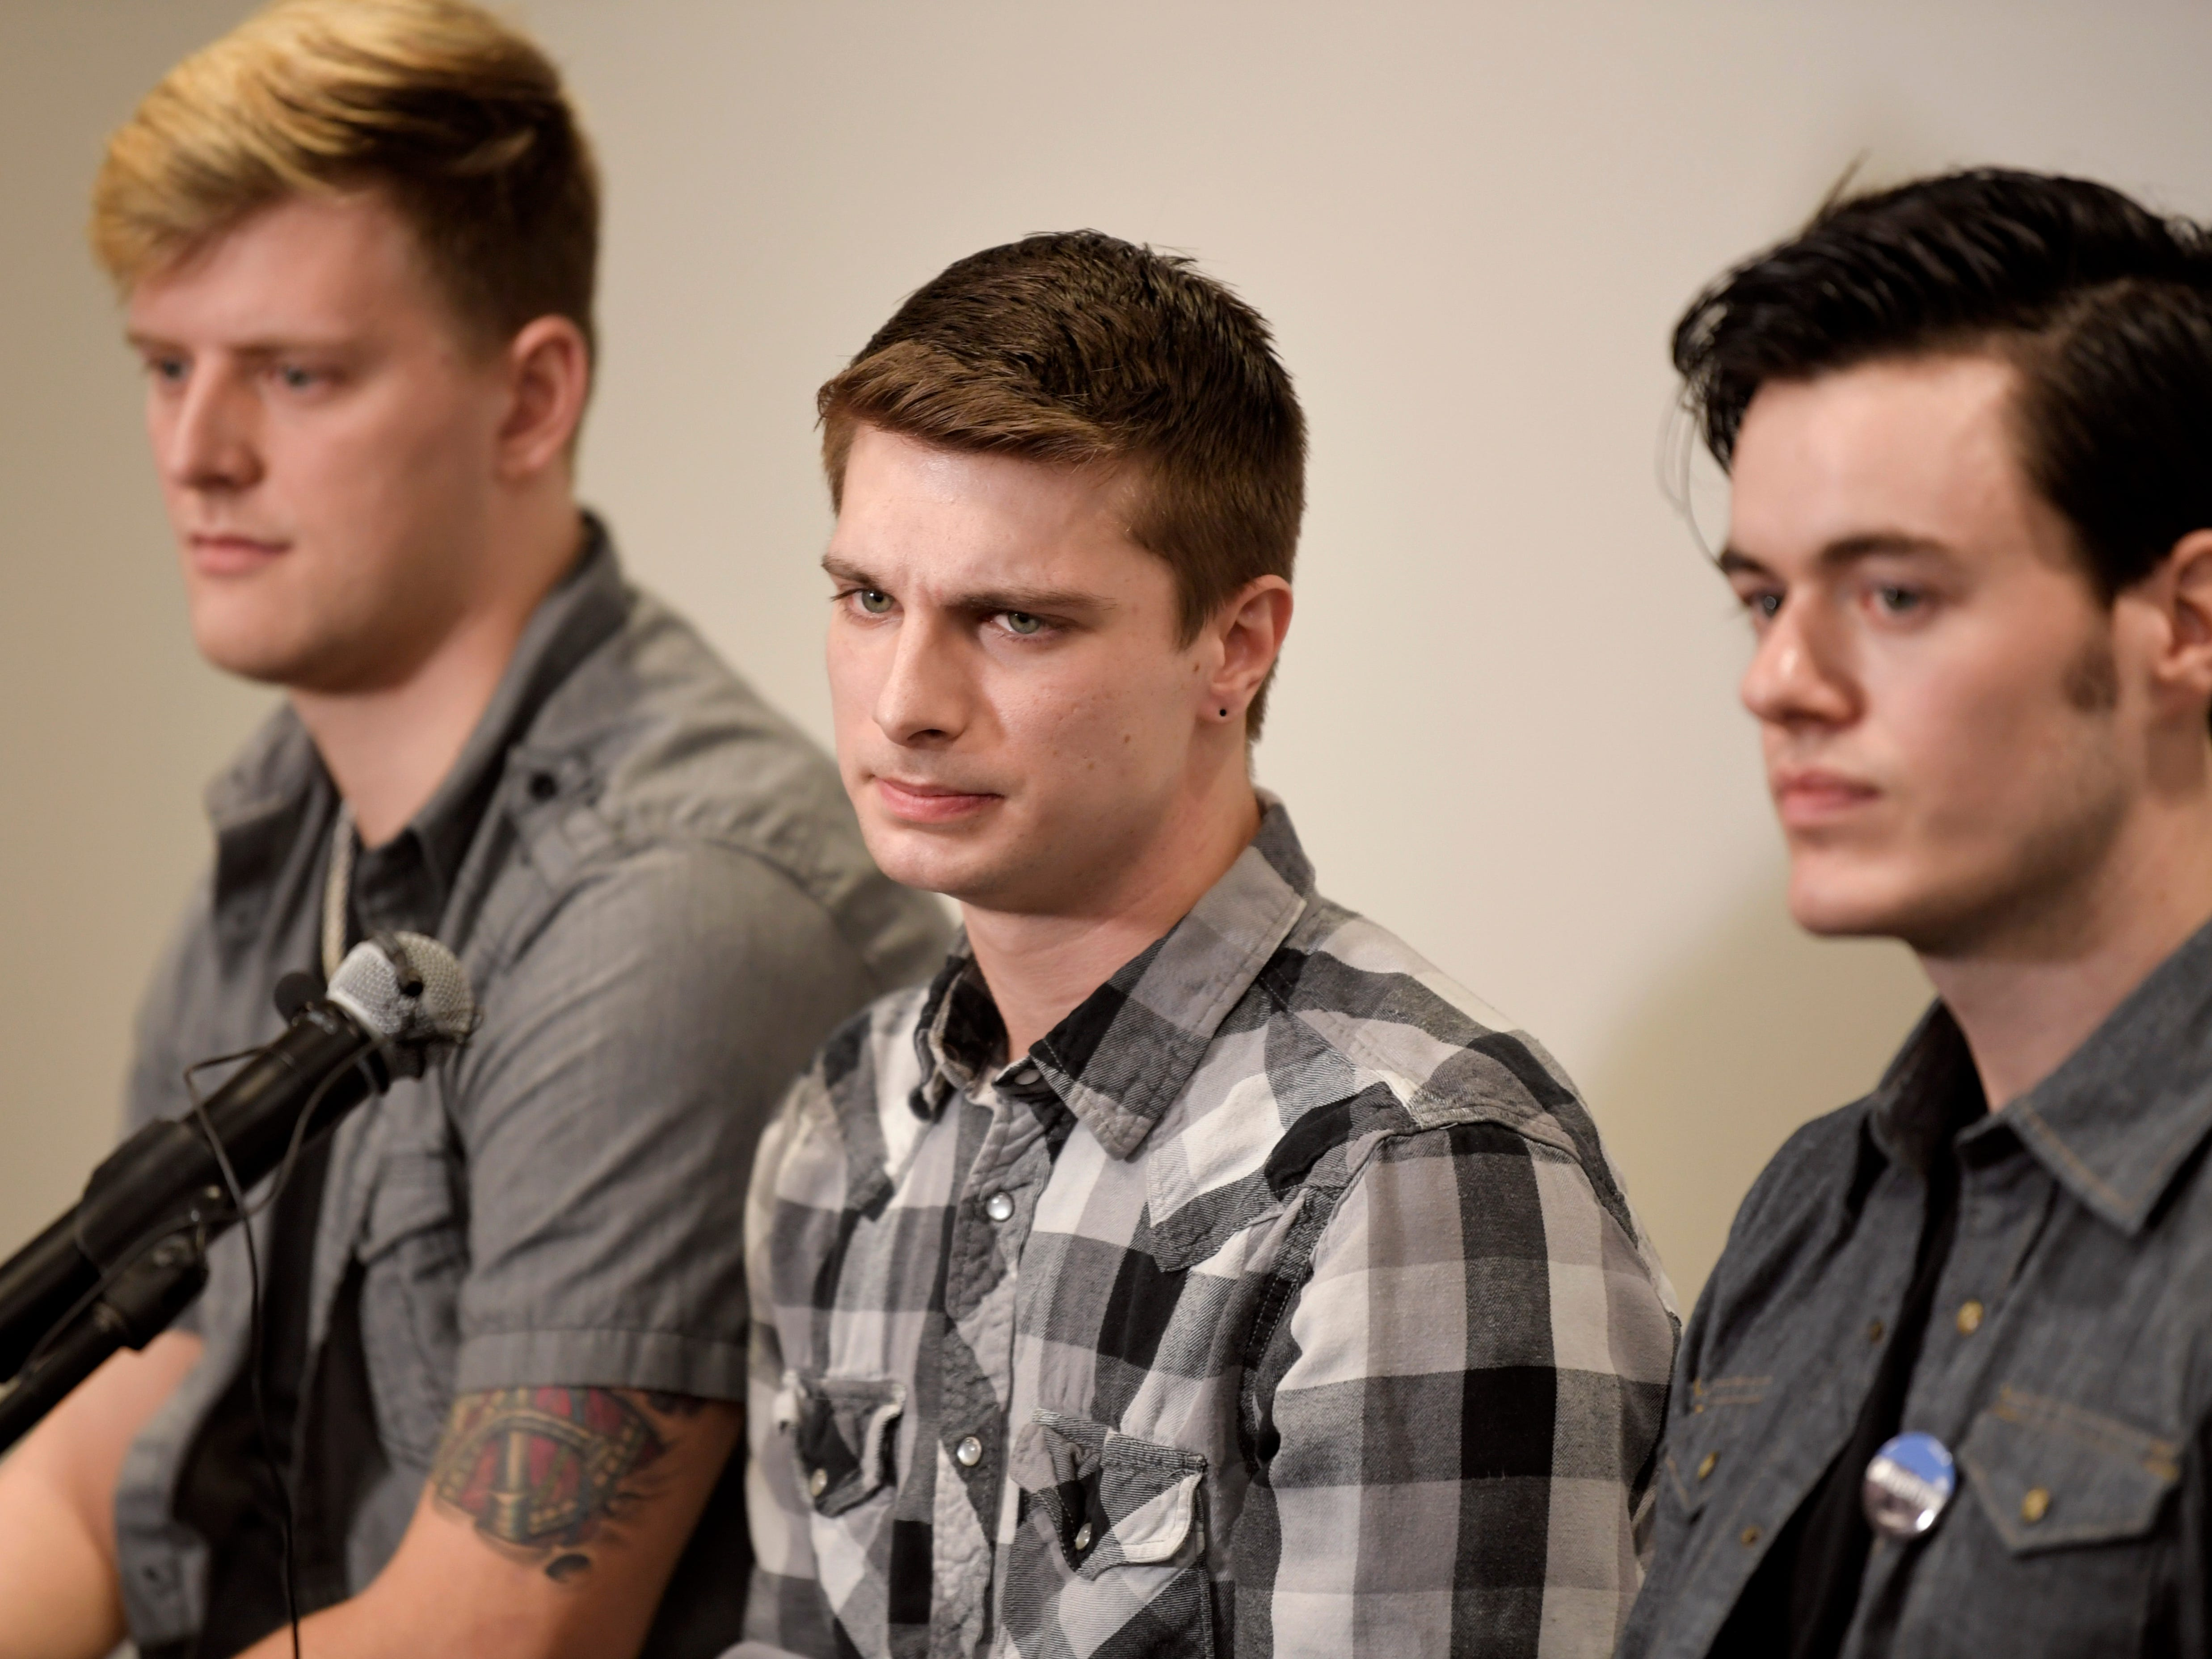 Carverton band members, from left, Michael Wiebell, Michael Curry and Christian Ferguson, talk about fellow member Kyle Yorlets during a press conference  at Belmont University on Monday, Feb. 11, 2019. Police have charged five juveniles in the case. A memorial service was scheduled to follow.